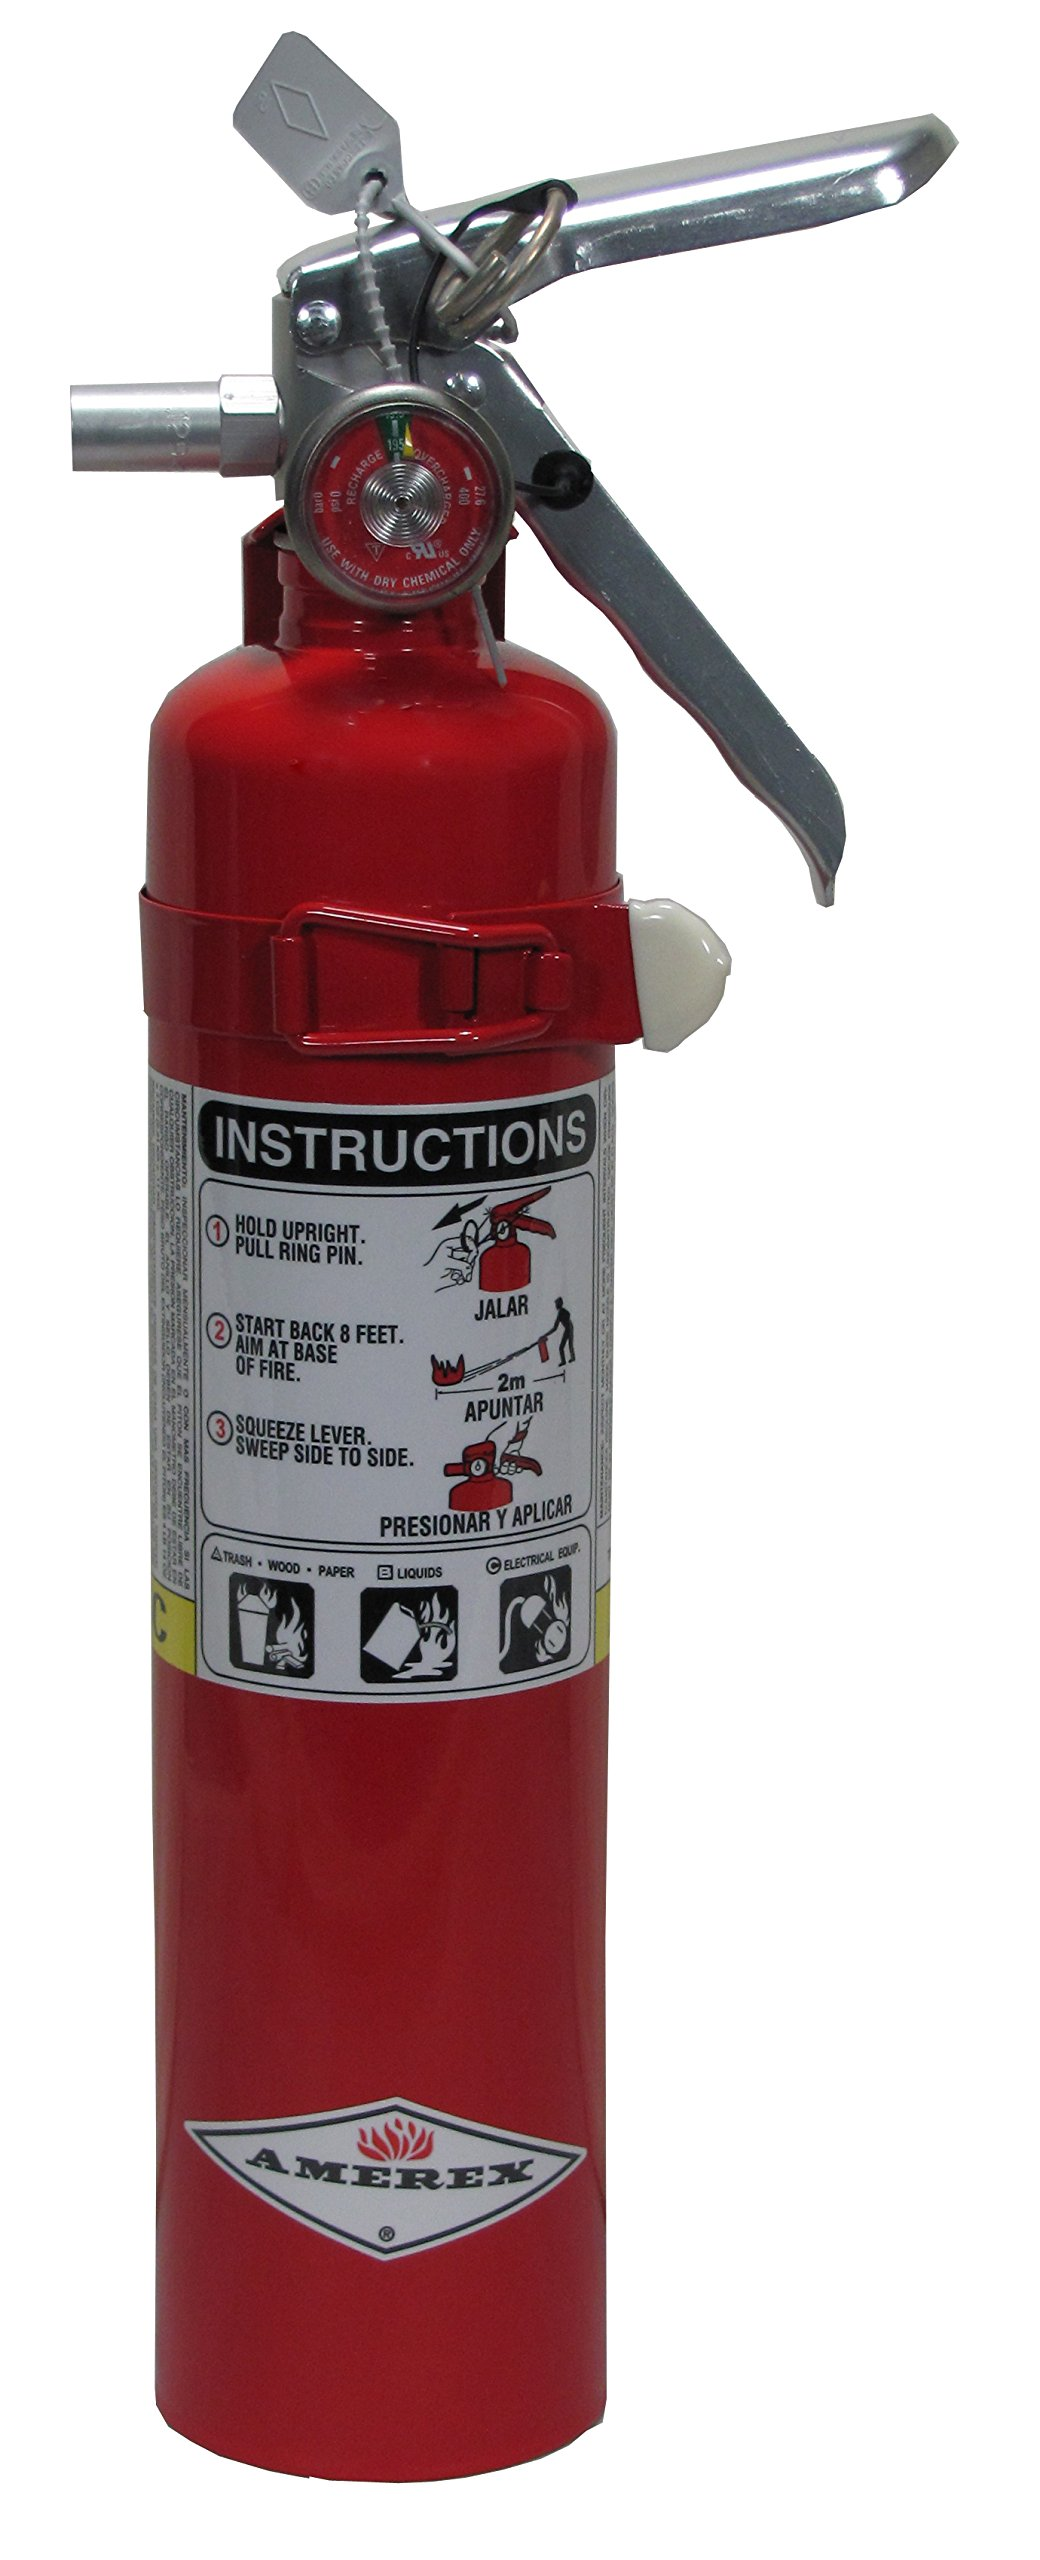 Amerex Dry Chemical Fire Extinguisher - B417T - 2.5 Pounds by Amerex